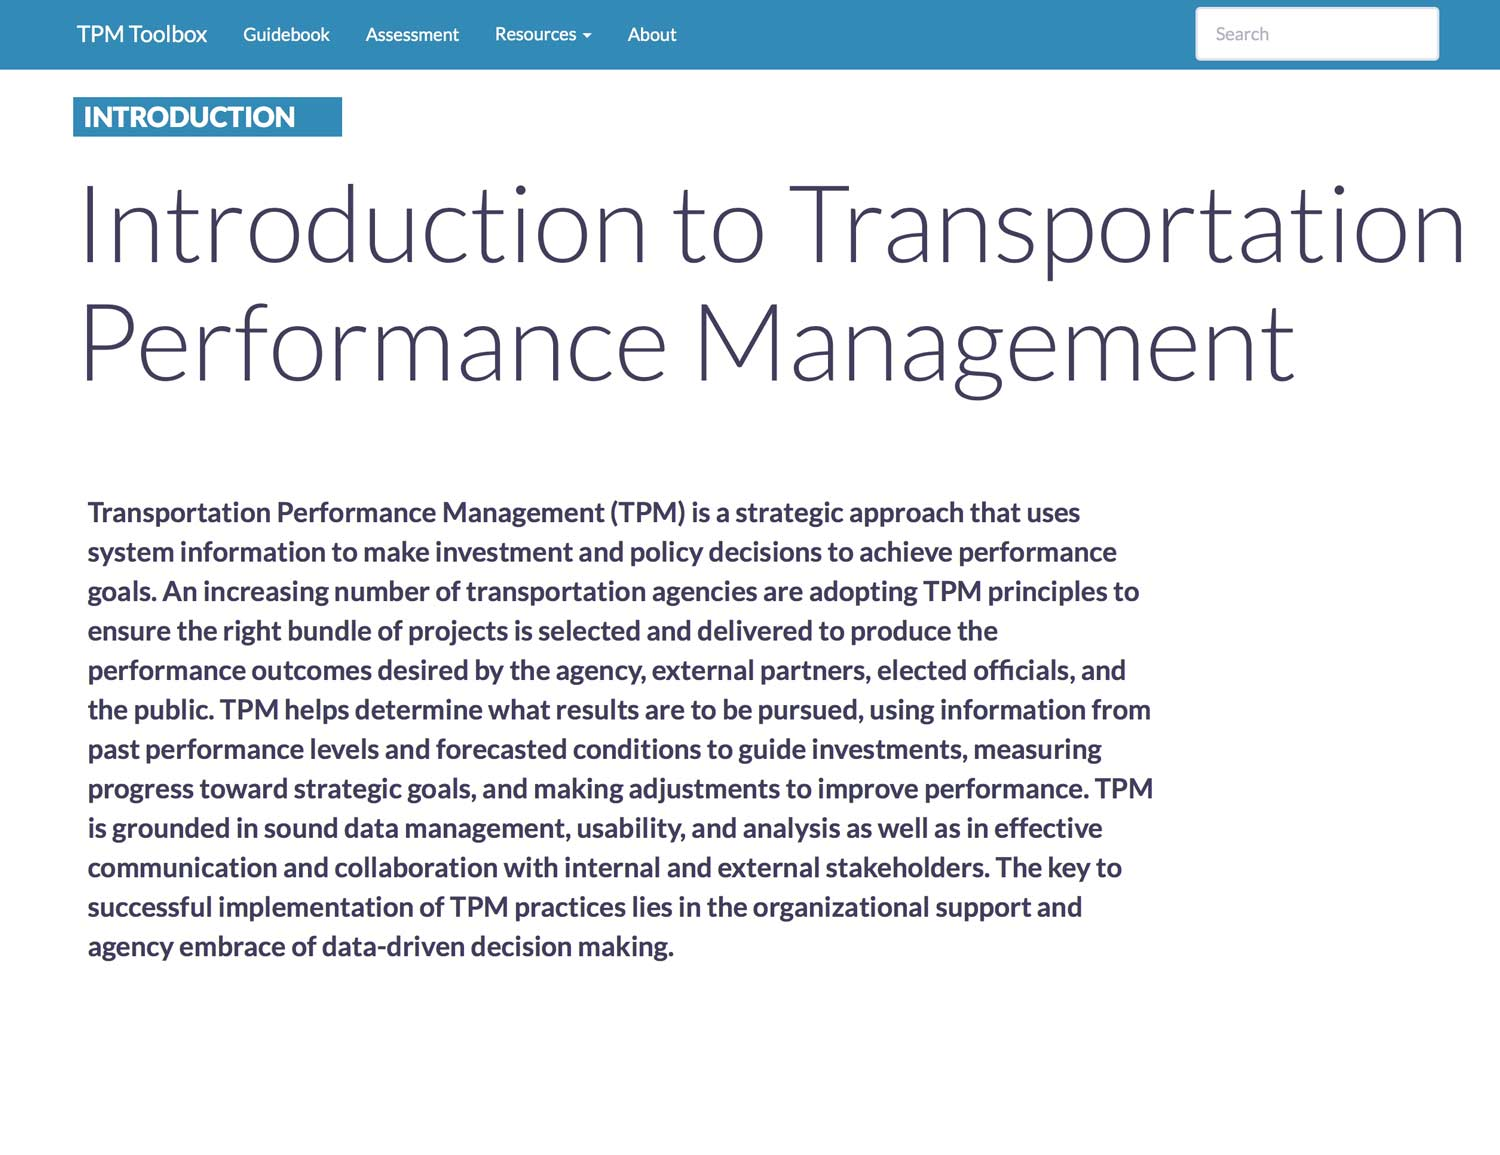 Thumbnail image of TPM Introduction Summary webpage.